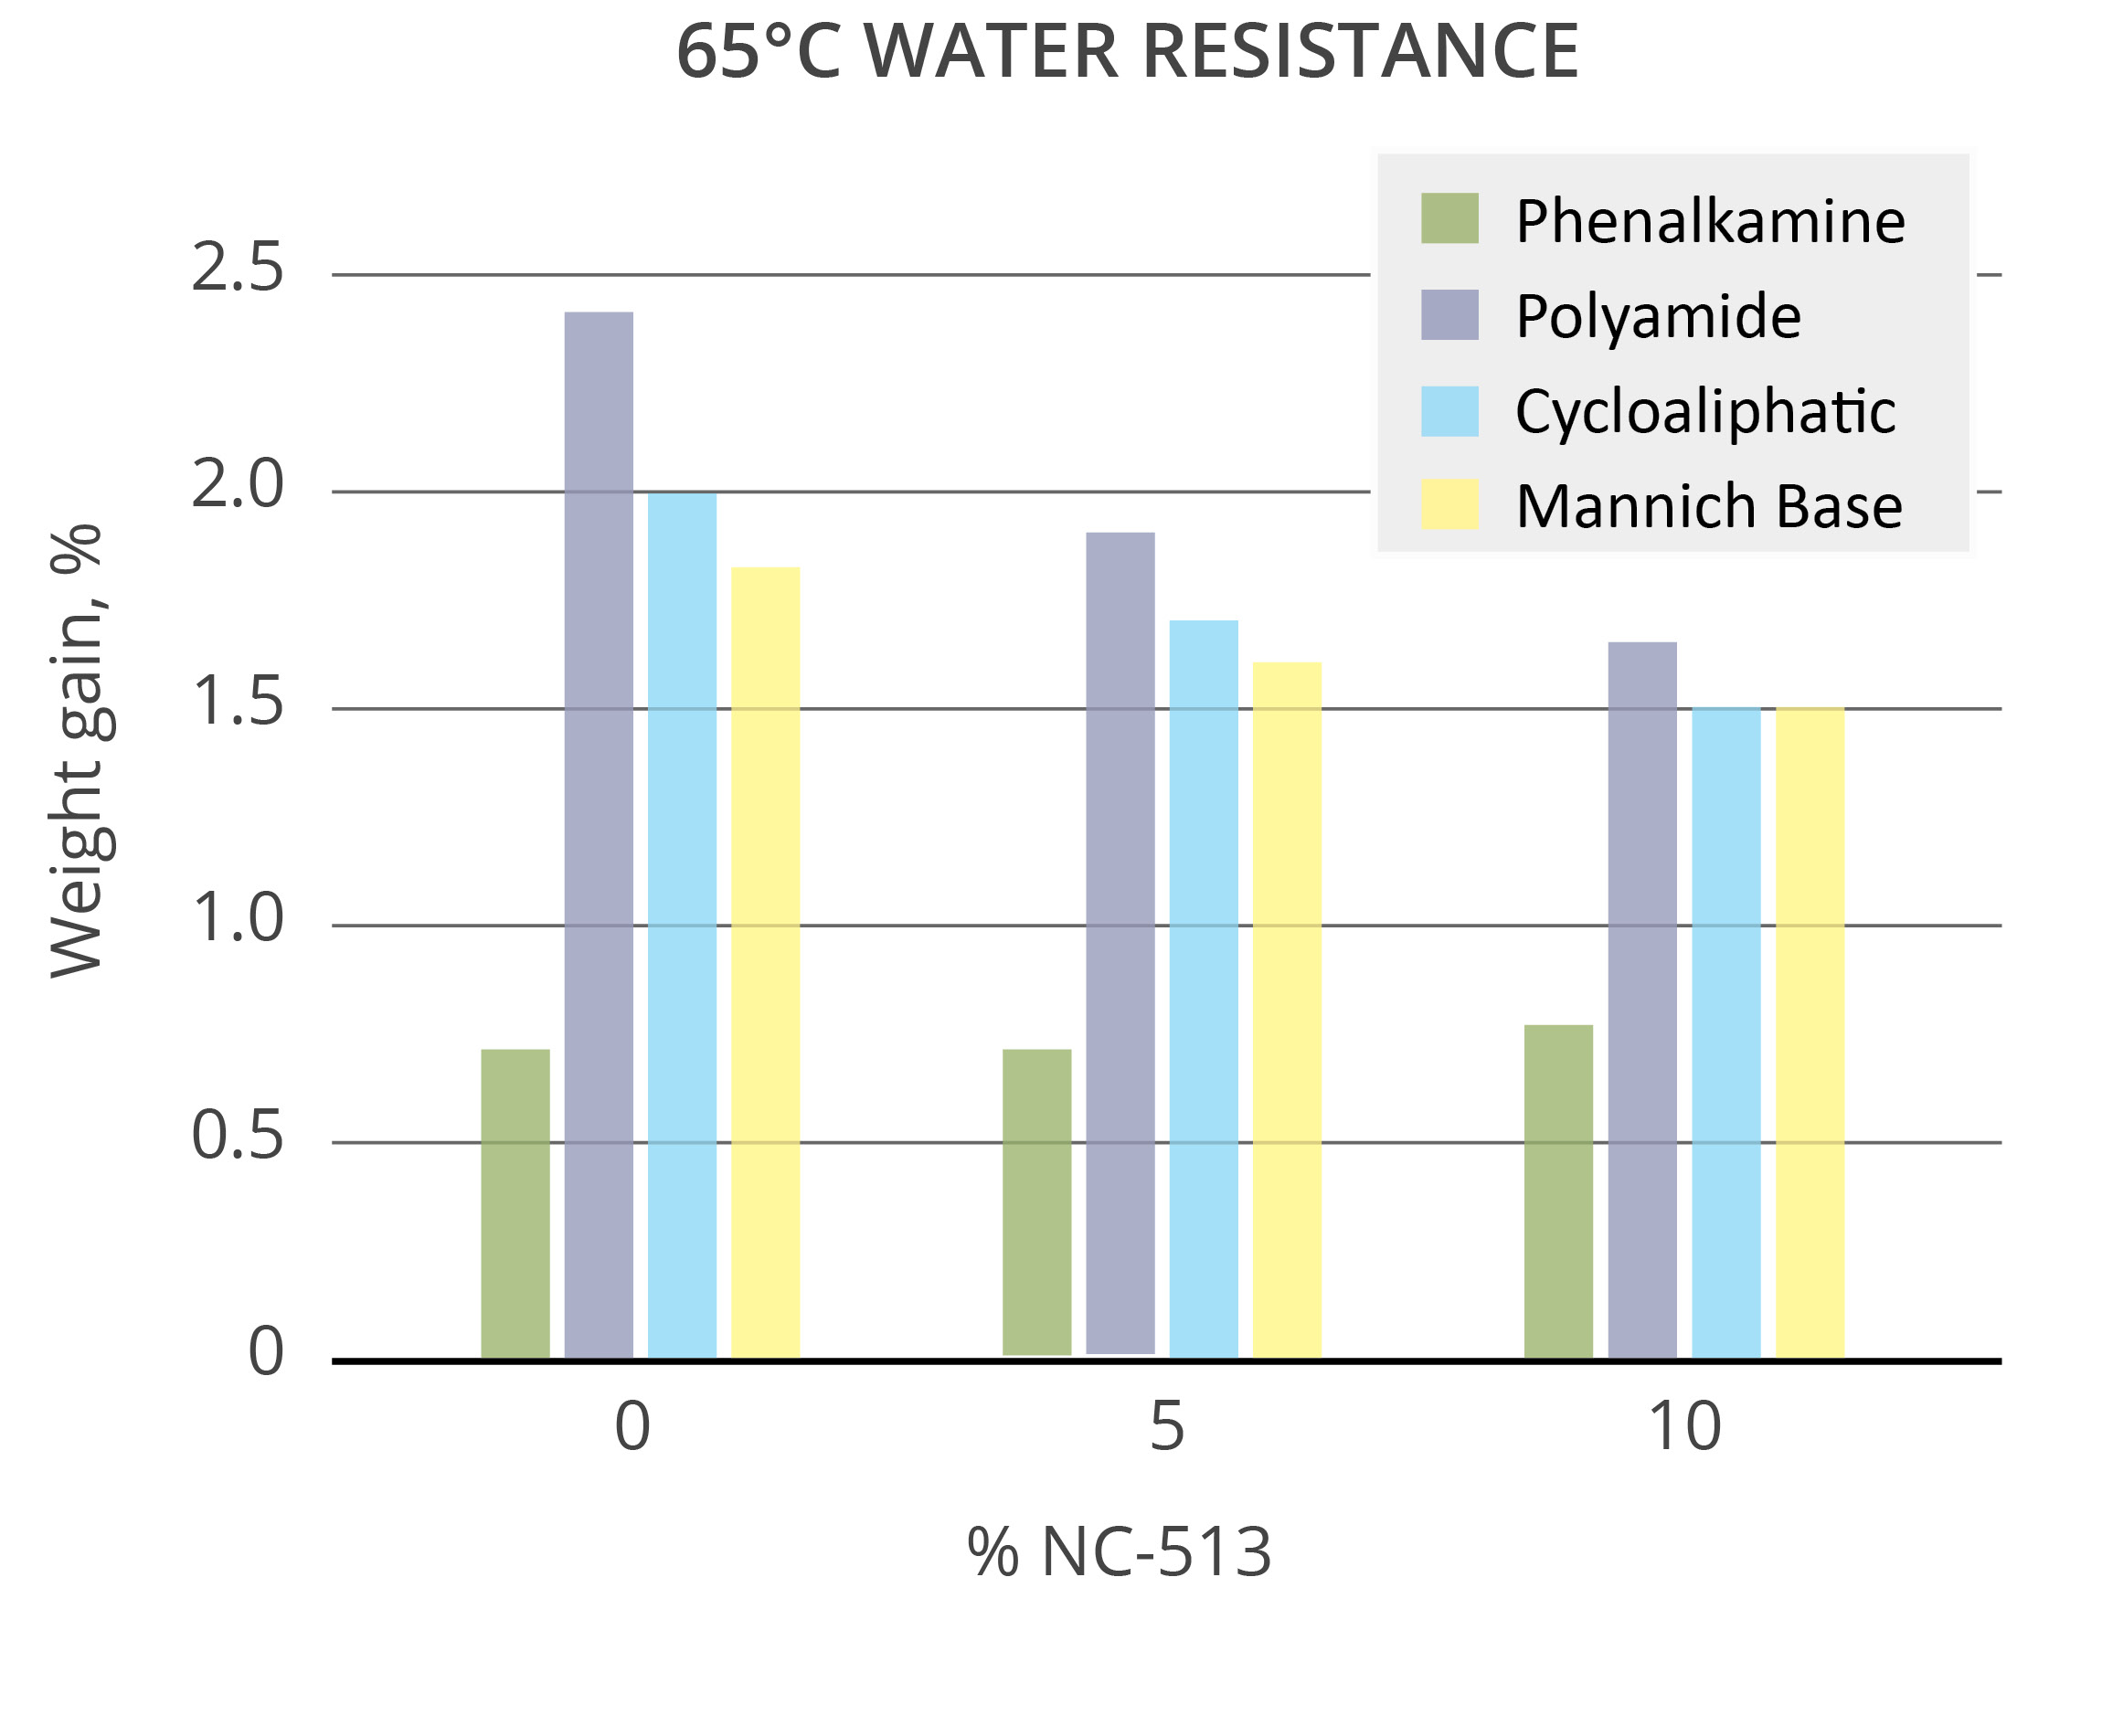 NC-513 Water Resistance